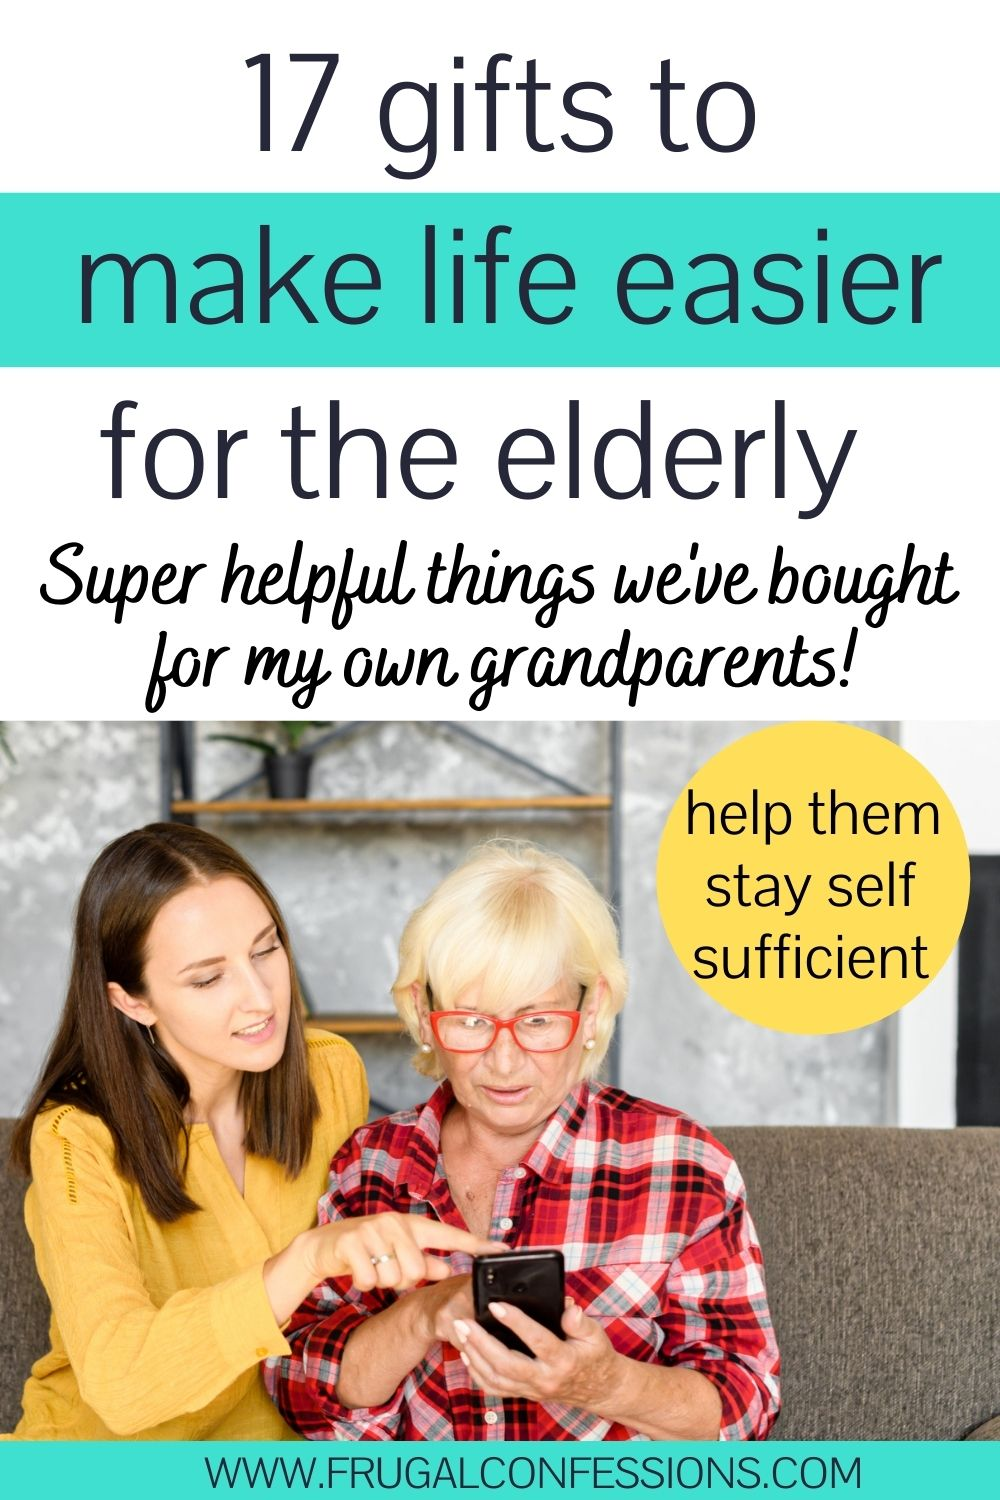 """woman with elderly Mom on couch helping with her iphone, text overlay """"17 gifts to make life easier for the elderly"""""""